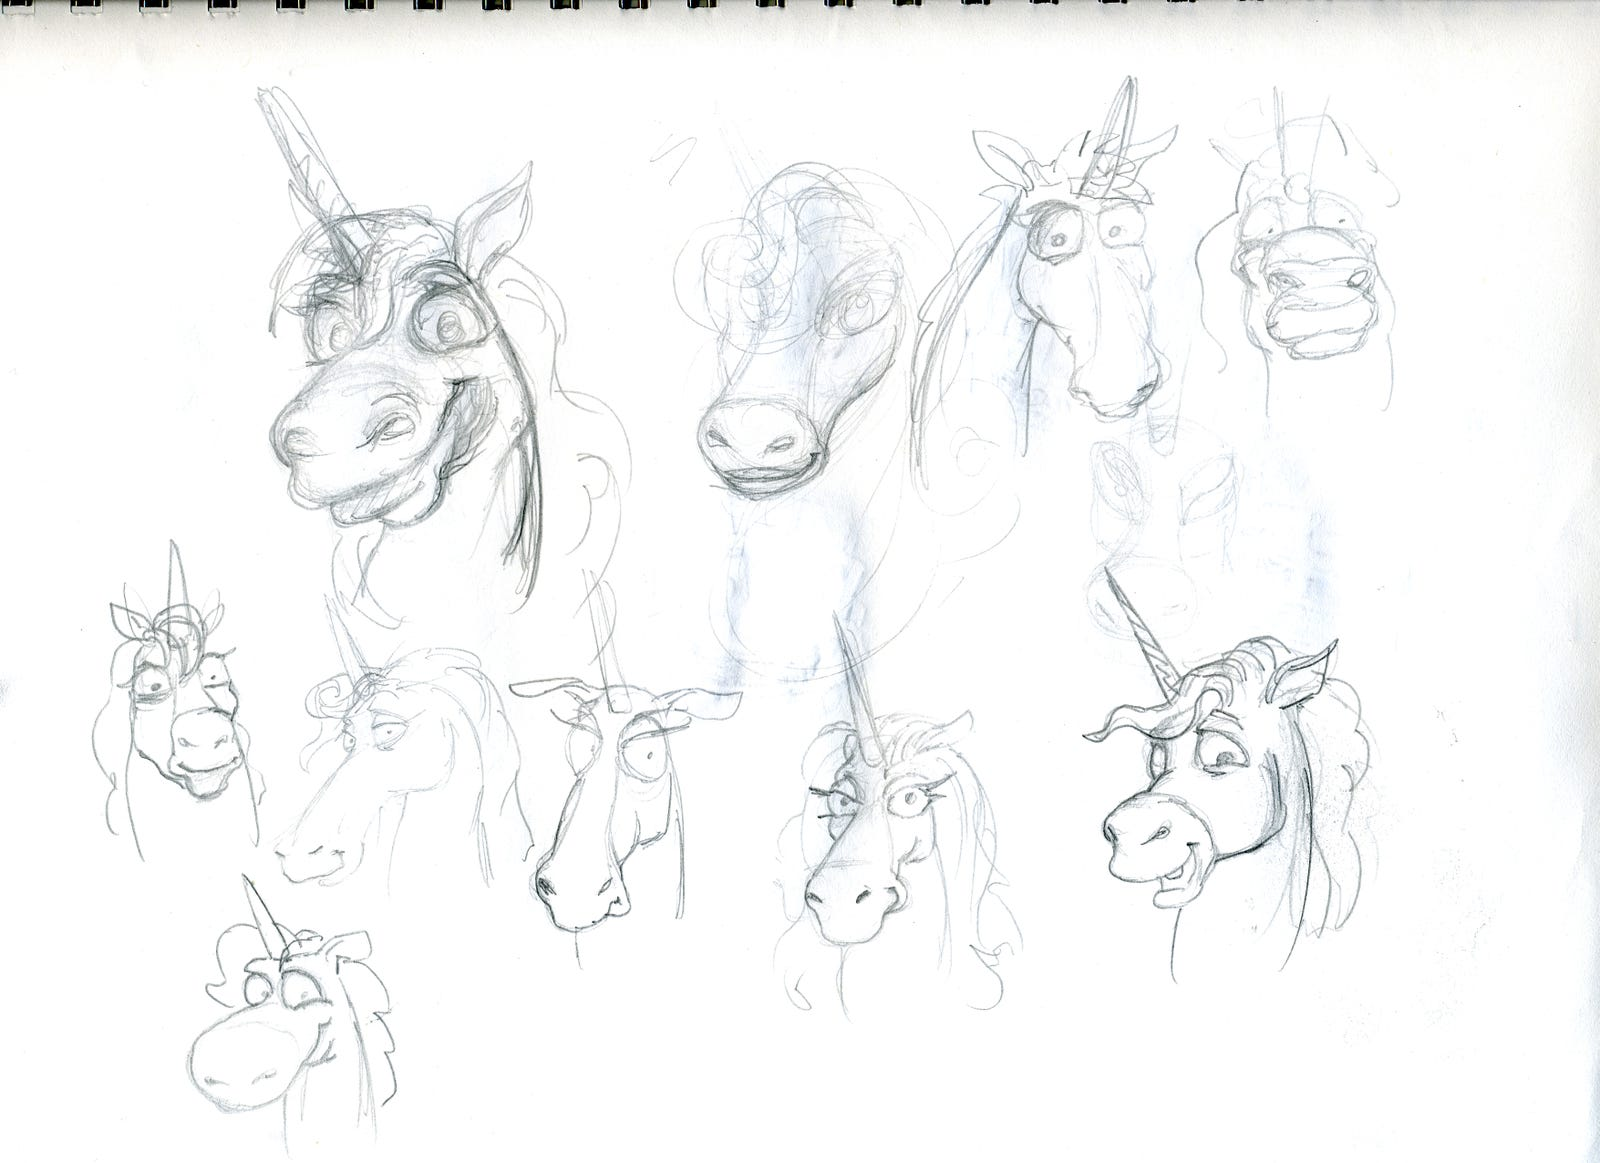 Peggle character sketches from the game's development.